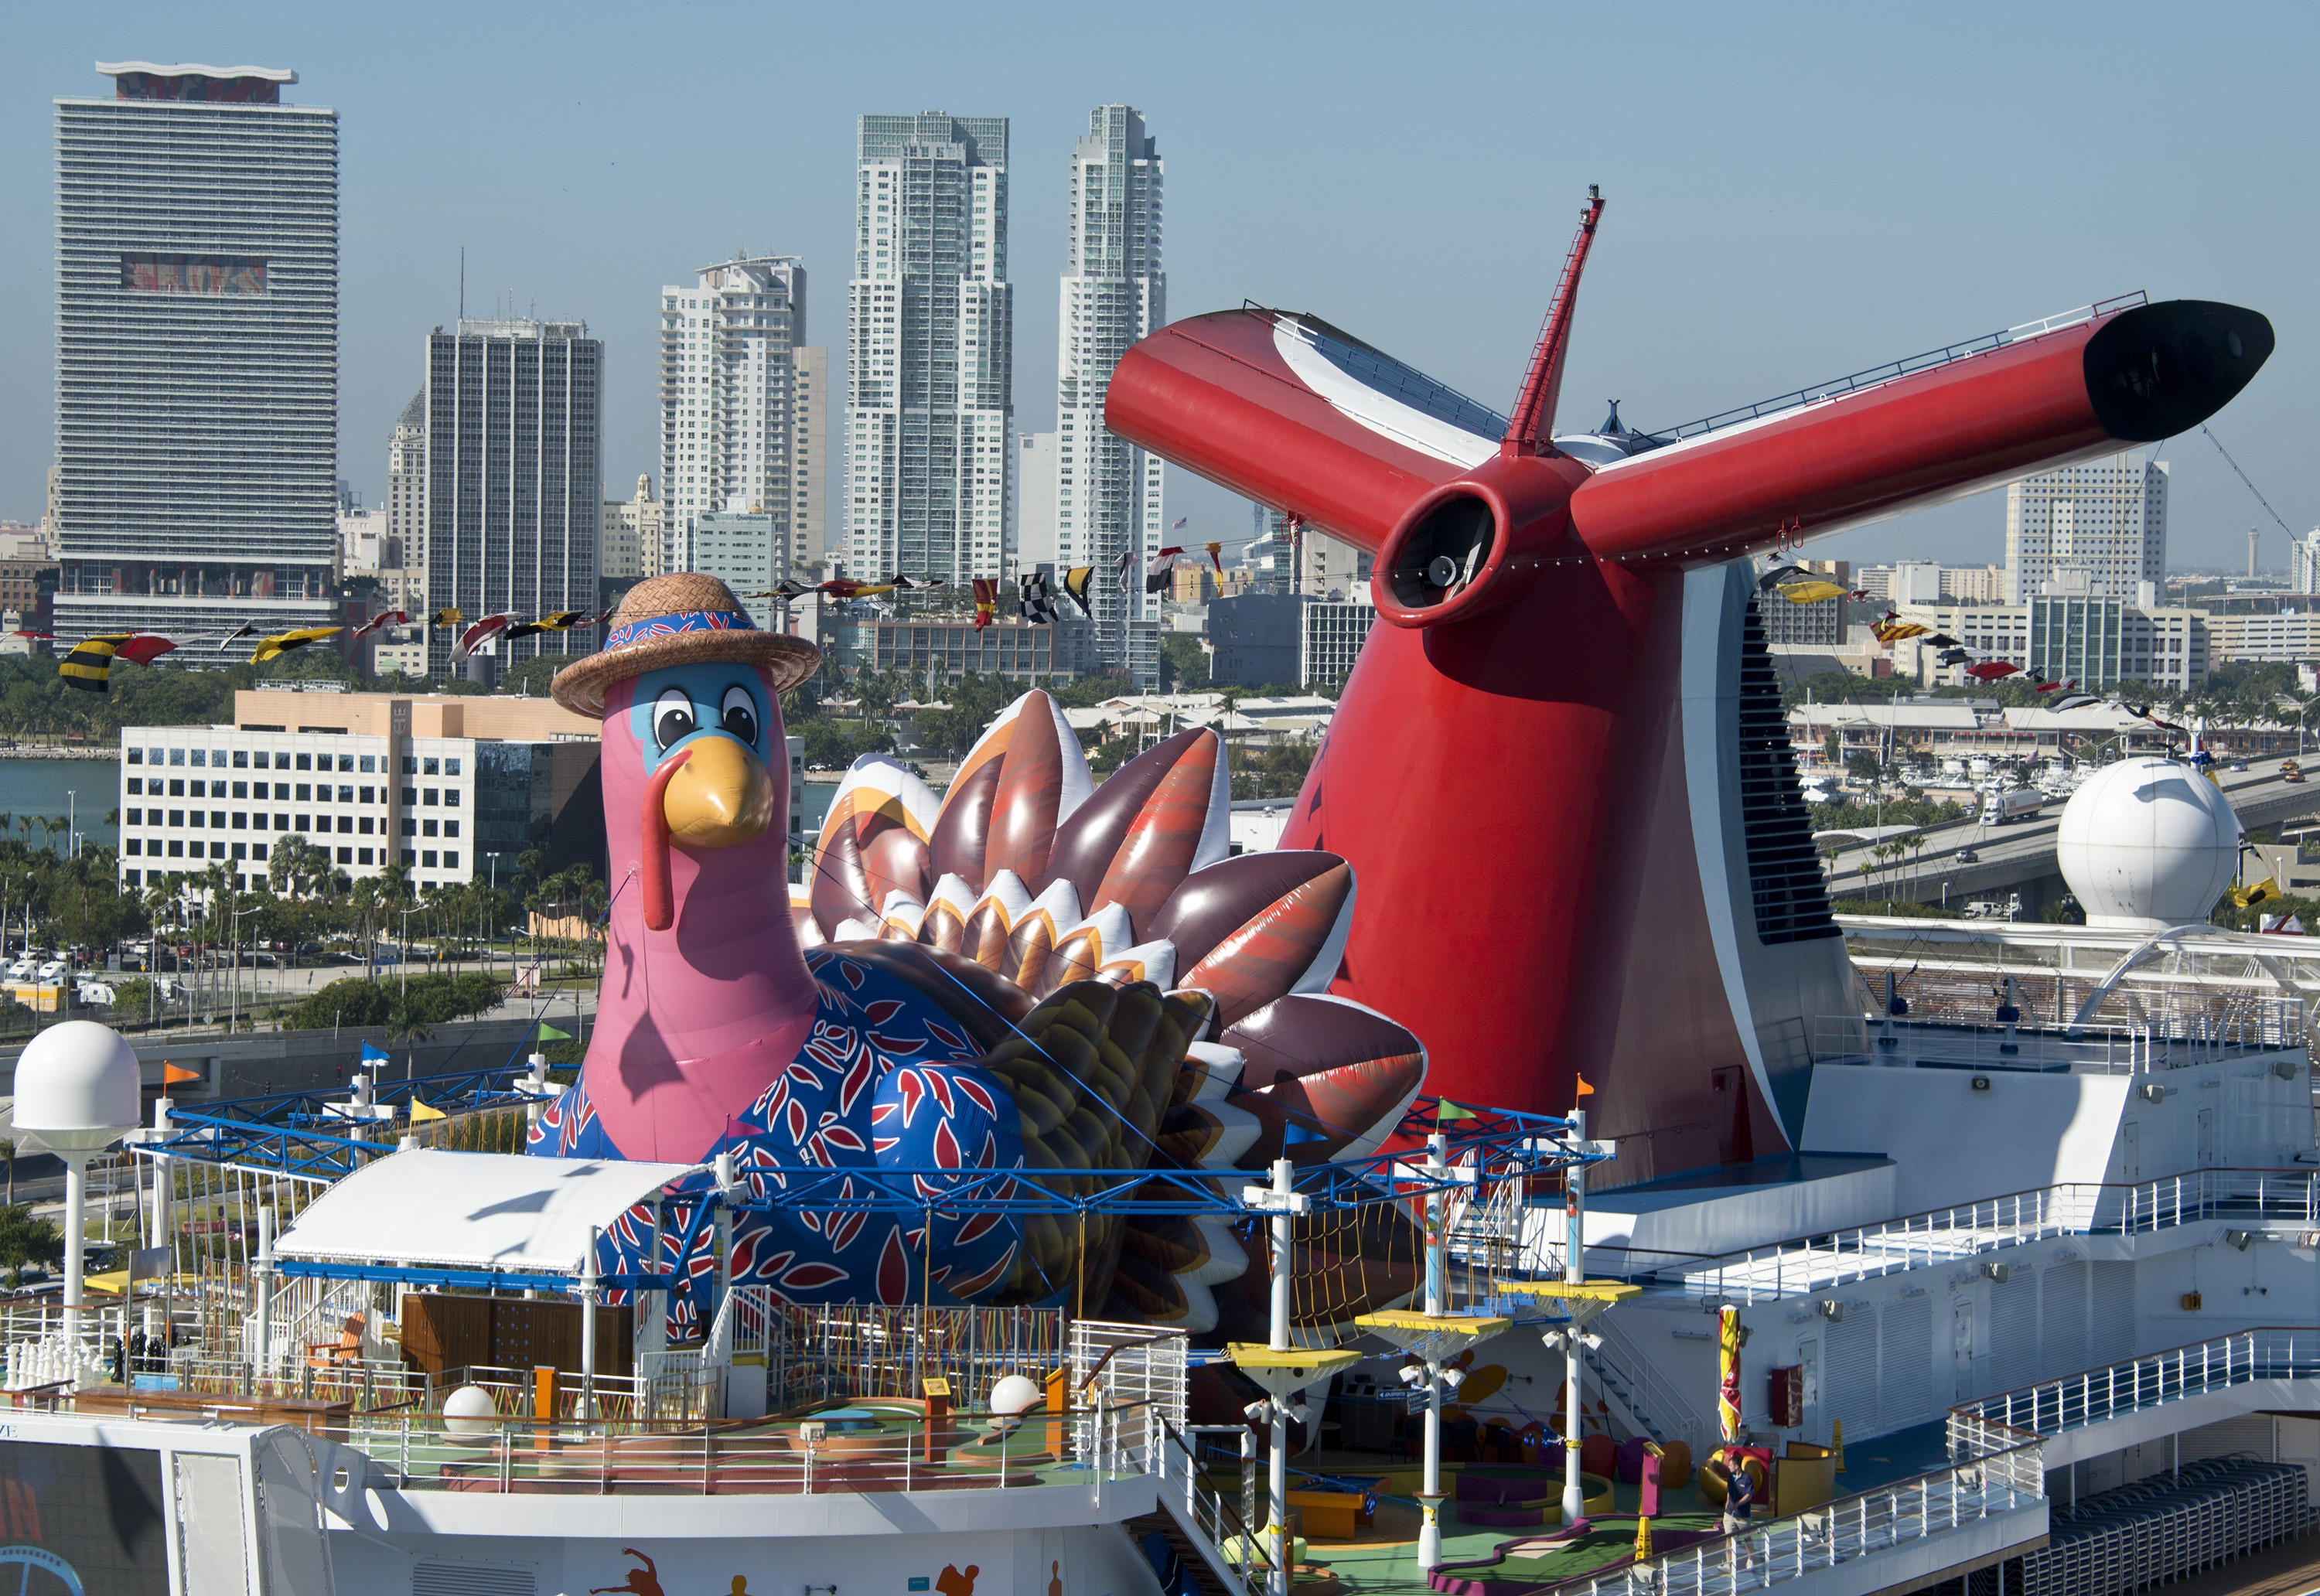 Carnival Cruise Line News - Cruise lines from florida